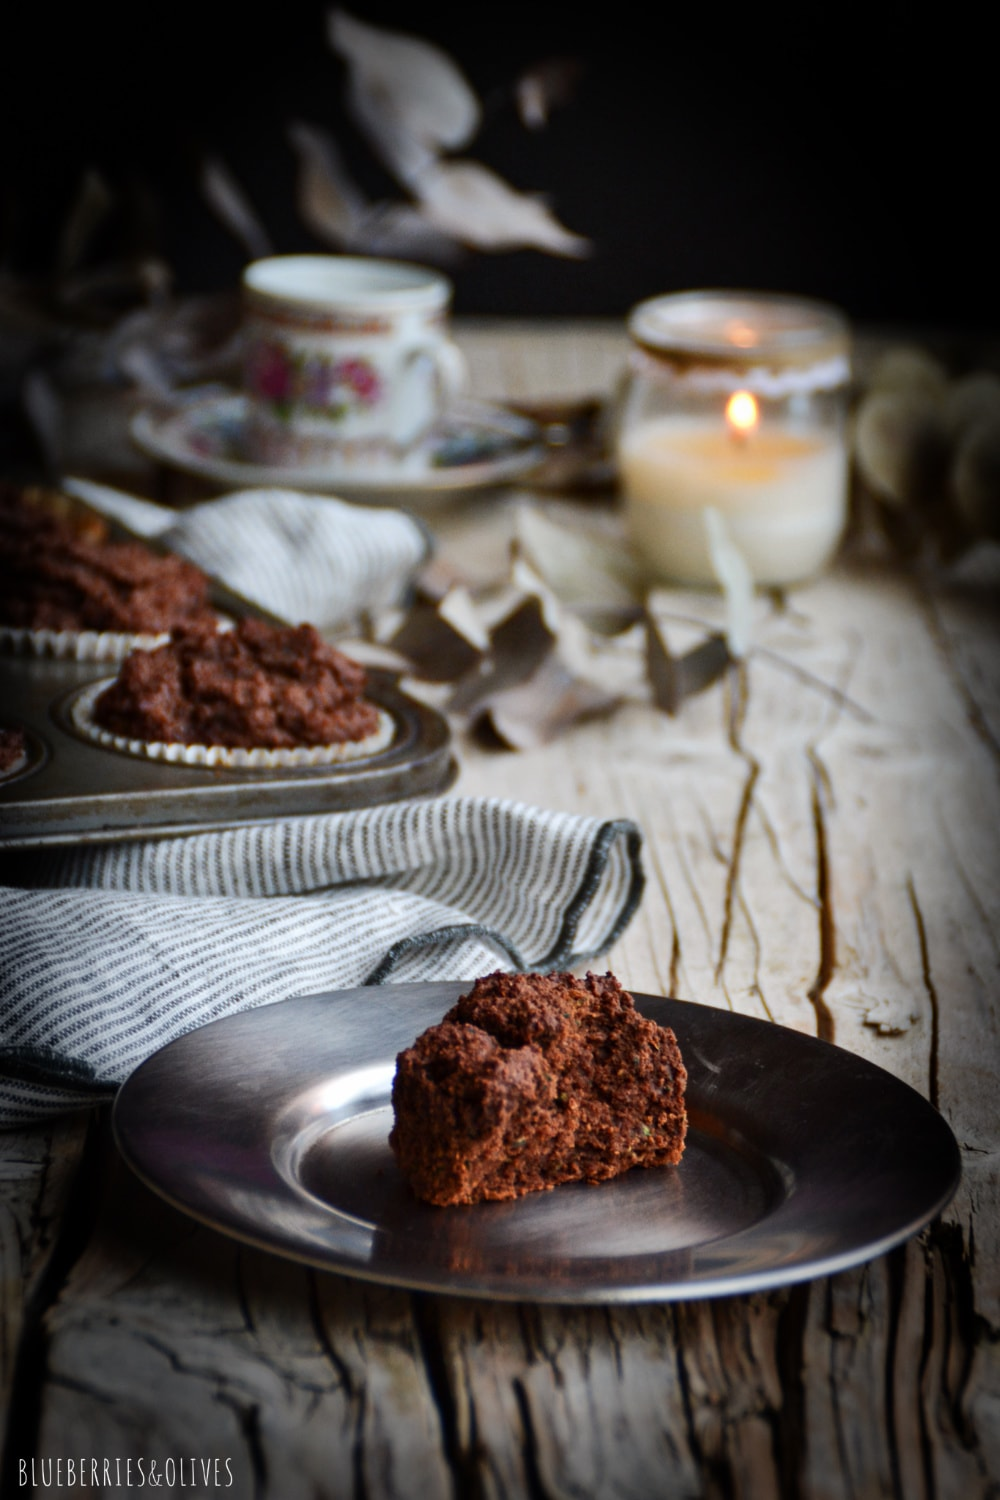 Cocoa muffins in old retro metallic pan, over old wood table, dark background, dry eucalyptus leaves, linen grey kitchen cloth